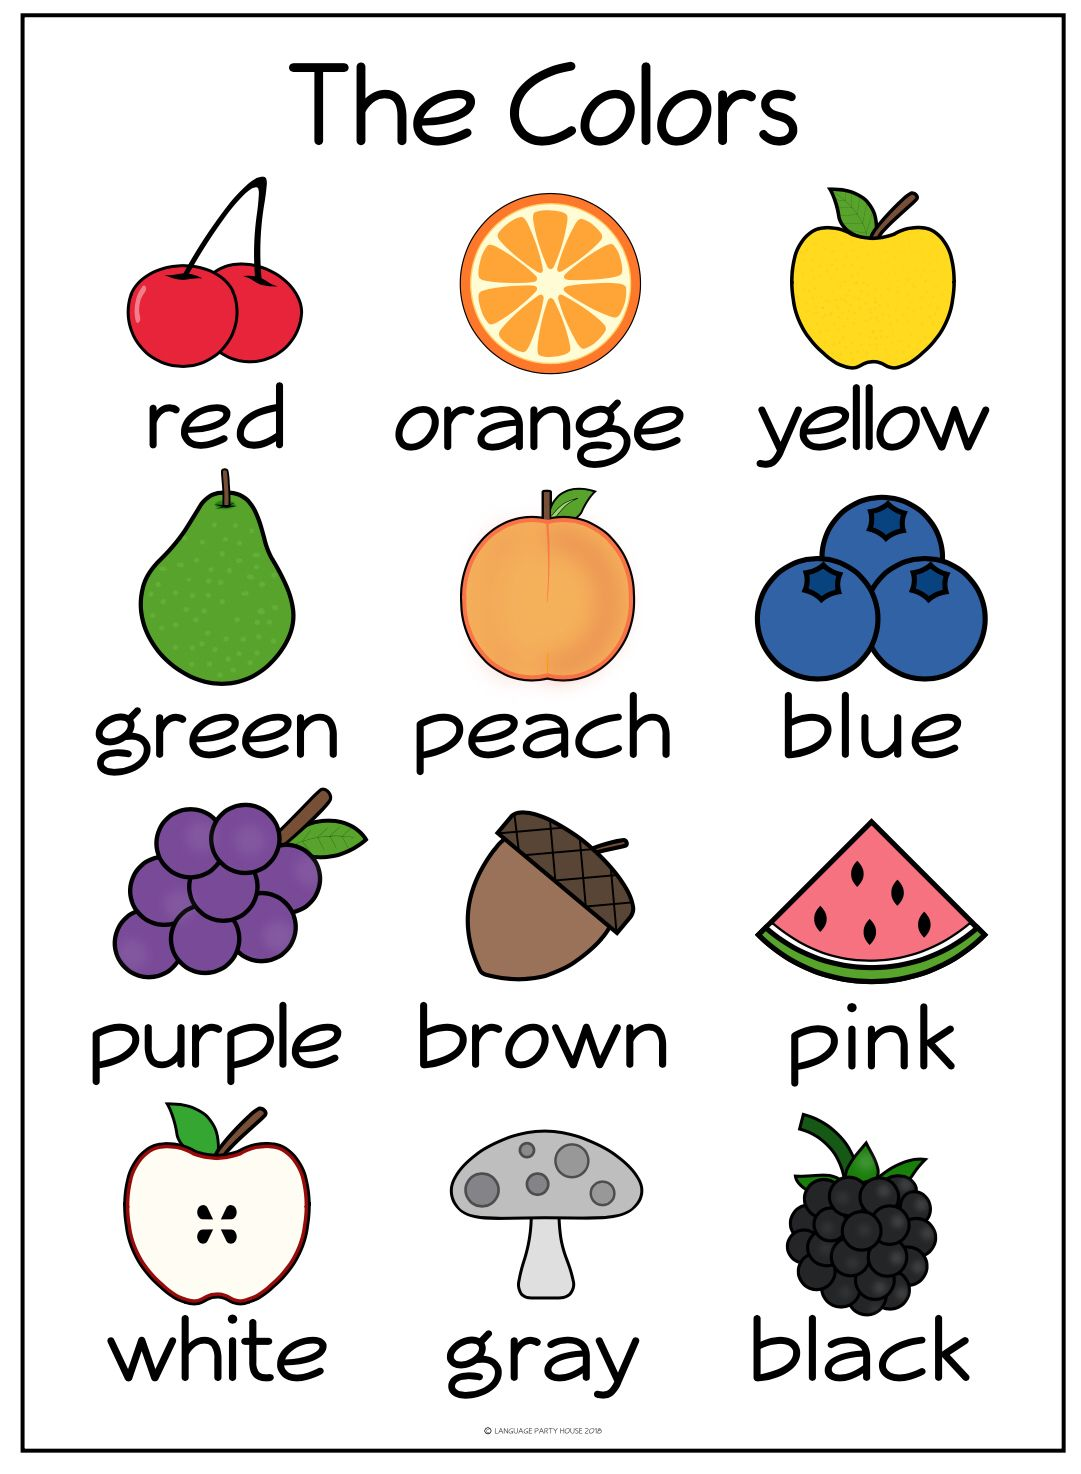 Colors In English With Fruit English Lessons For Kids French Colors Learn French